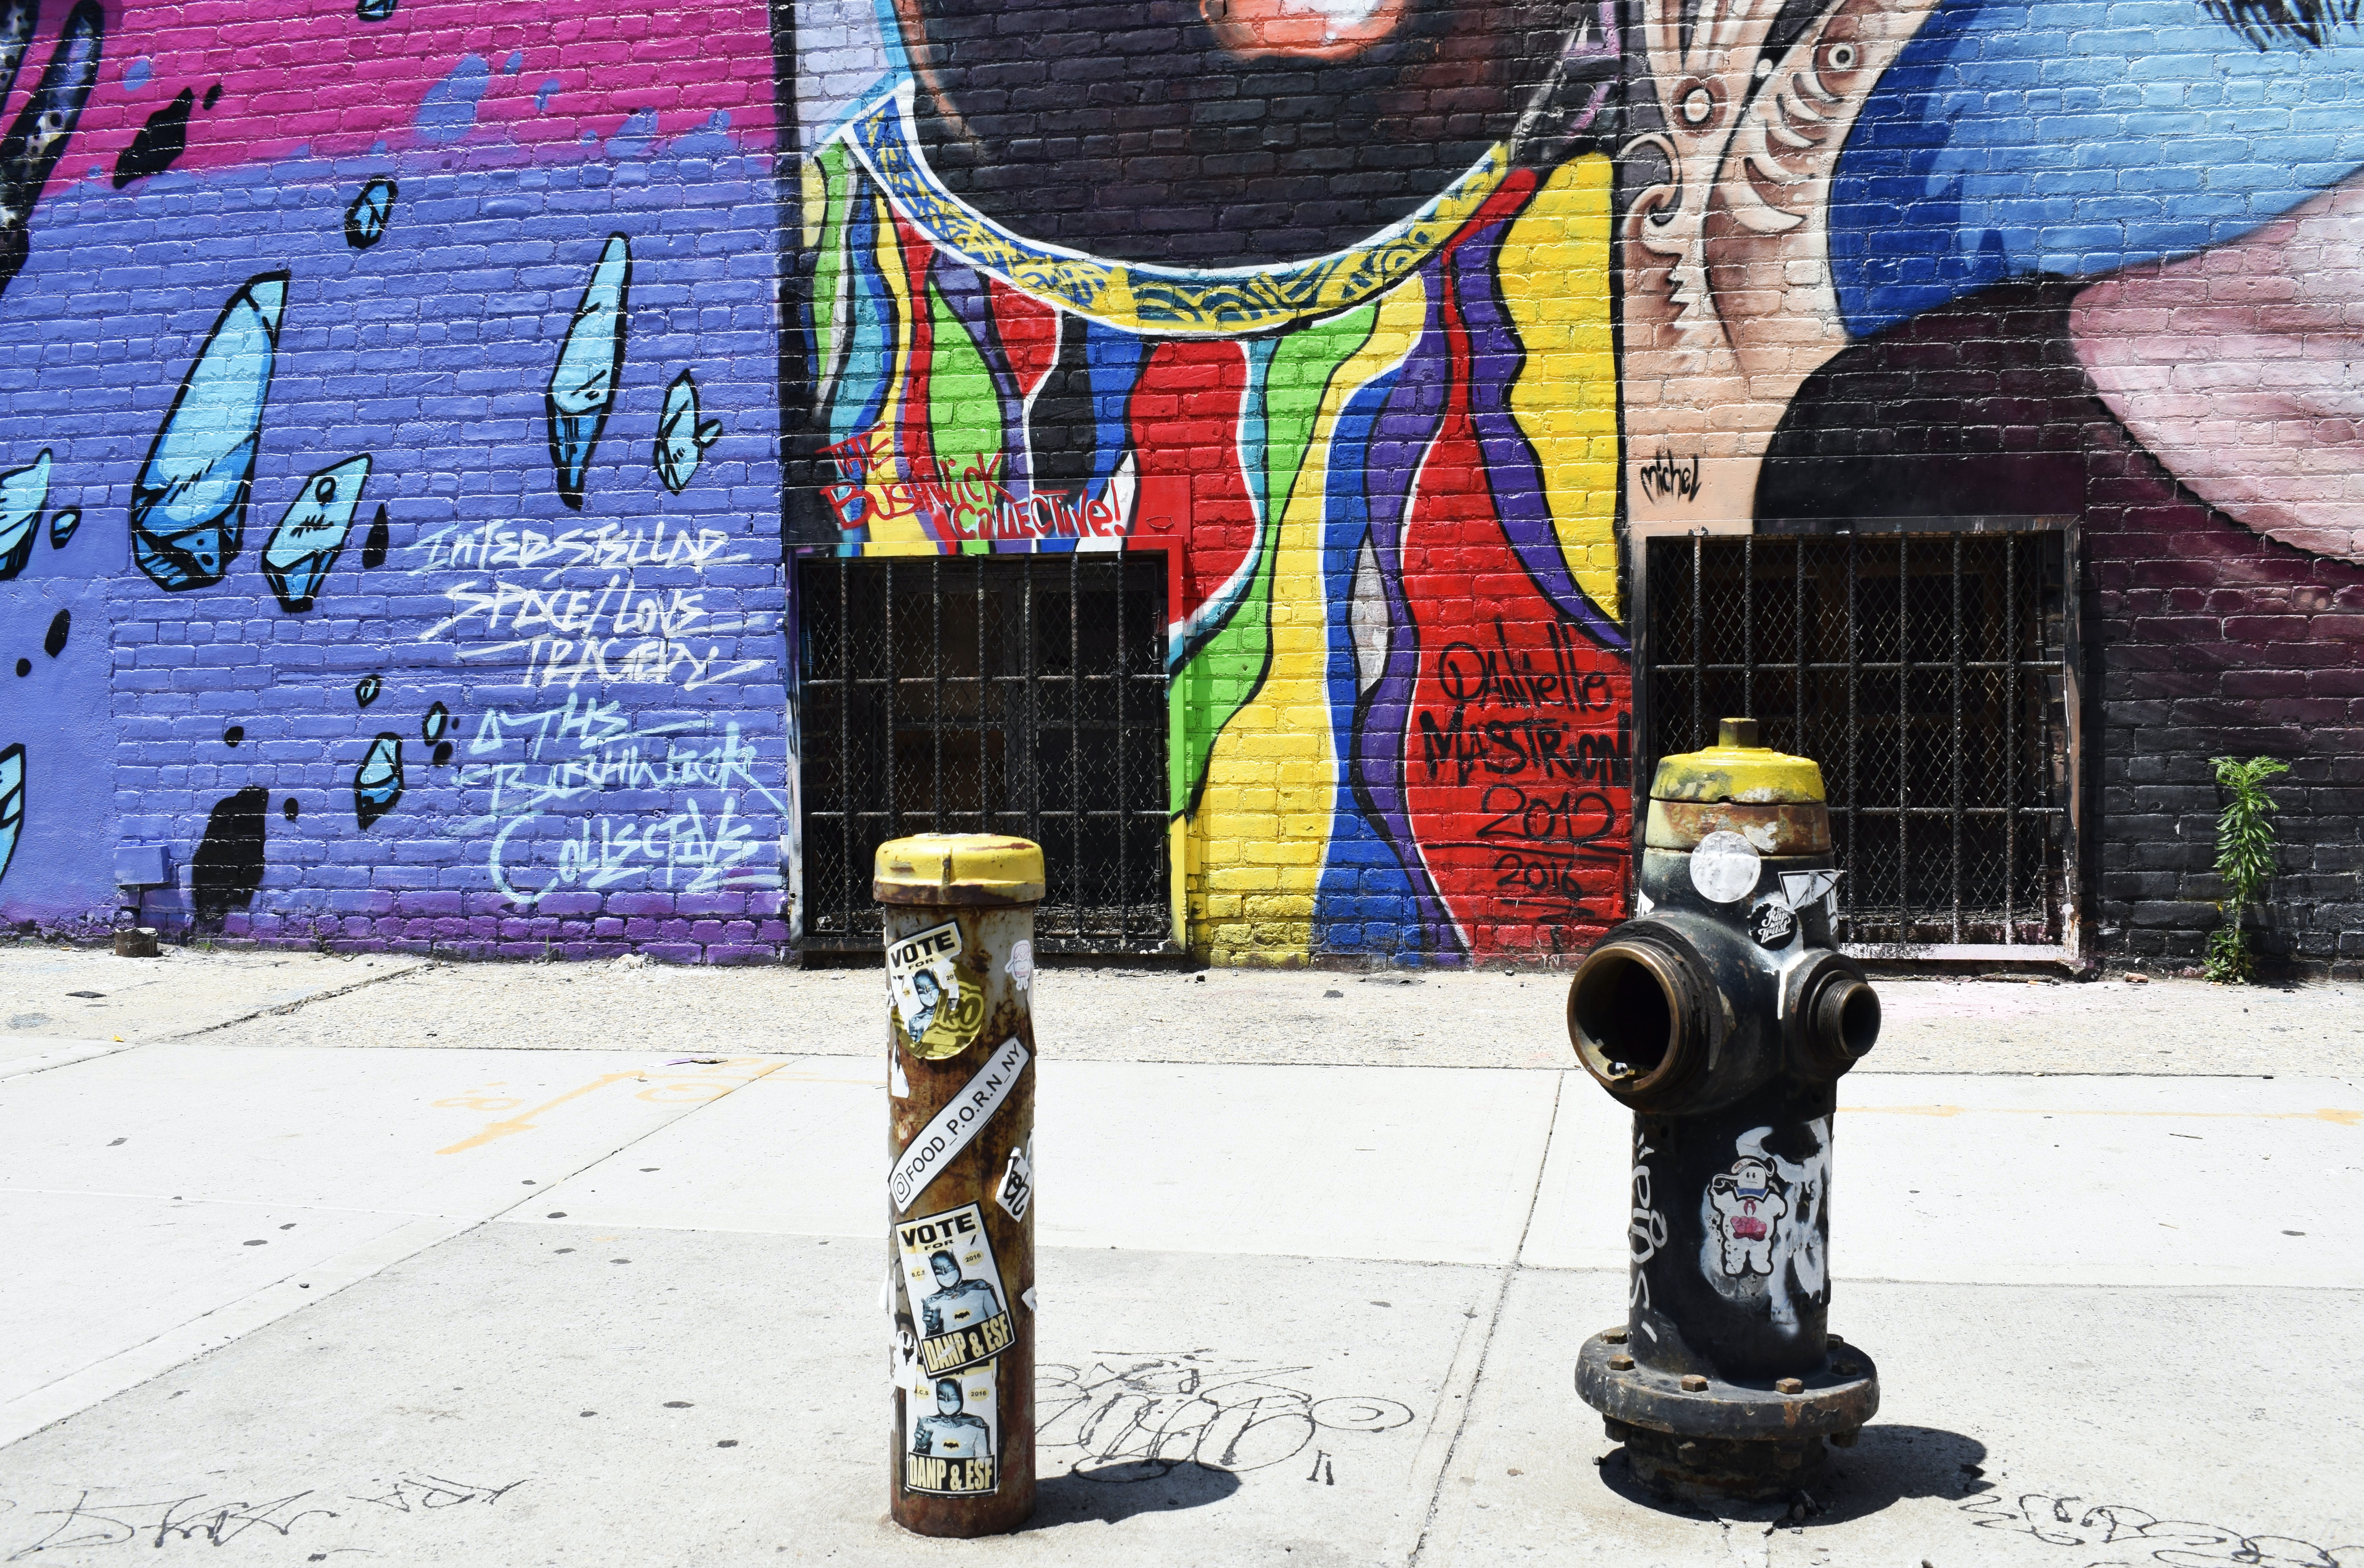 black fire hydrant near graffiti wall